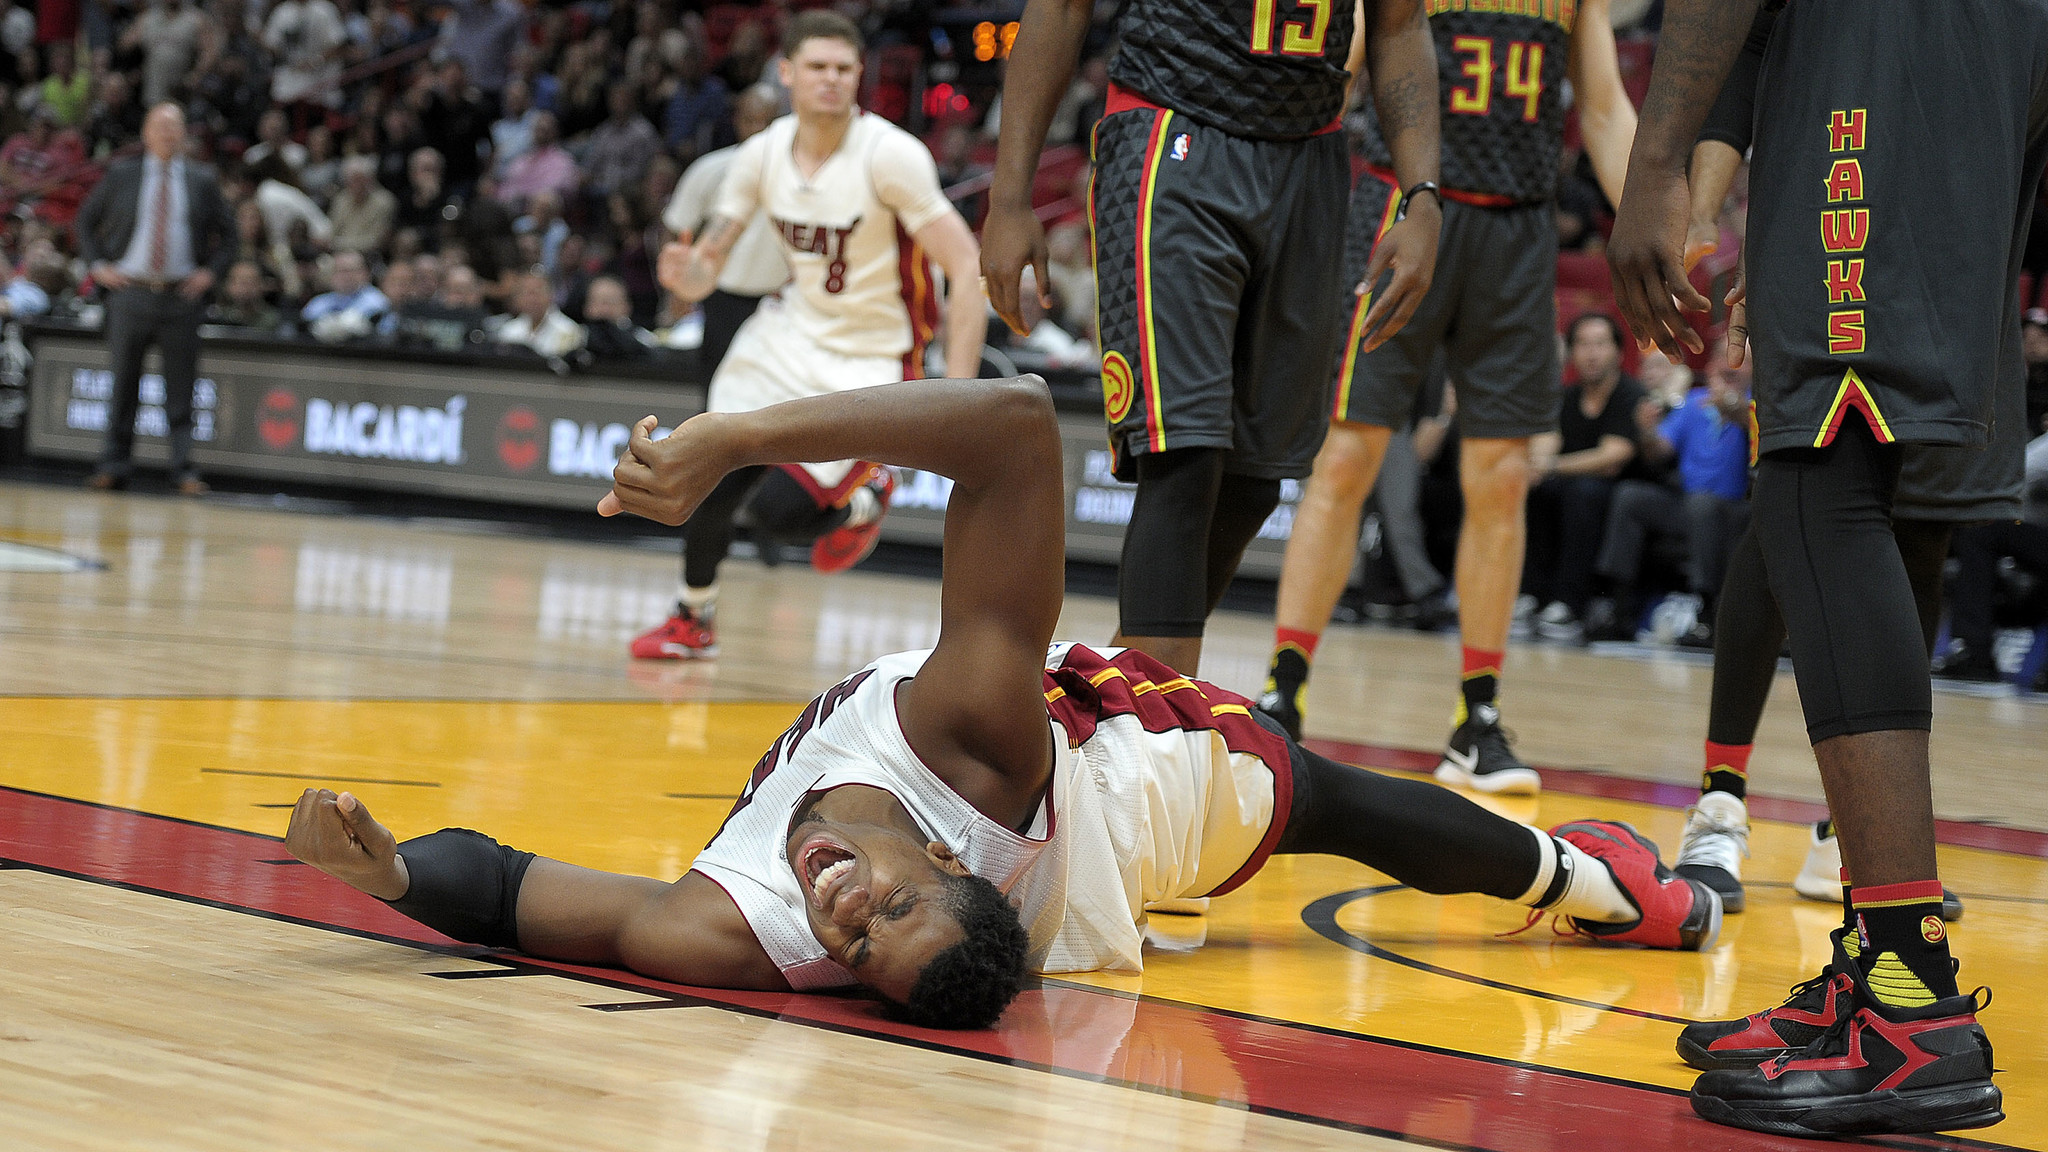 Video: Hawks' Prince commits flagrant foul on Whiteside; Johnson ejected - Sun Sentinel